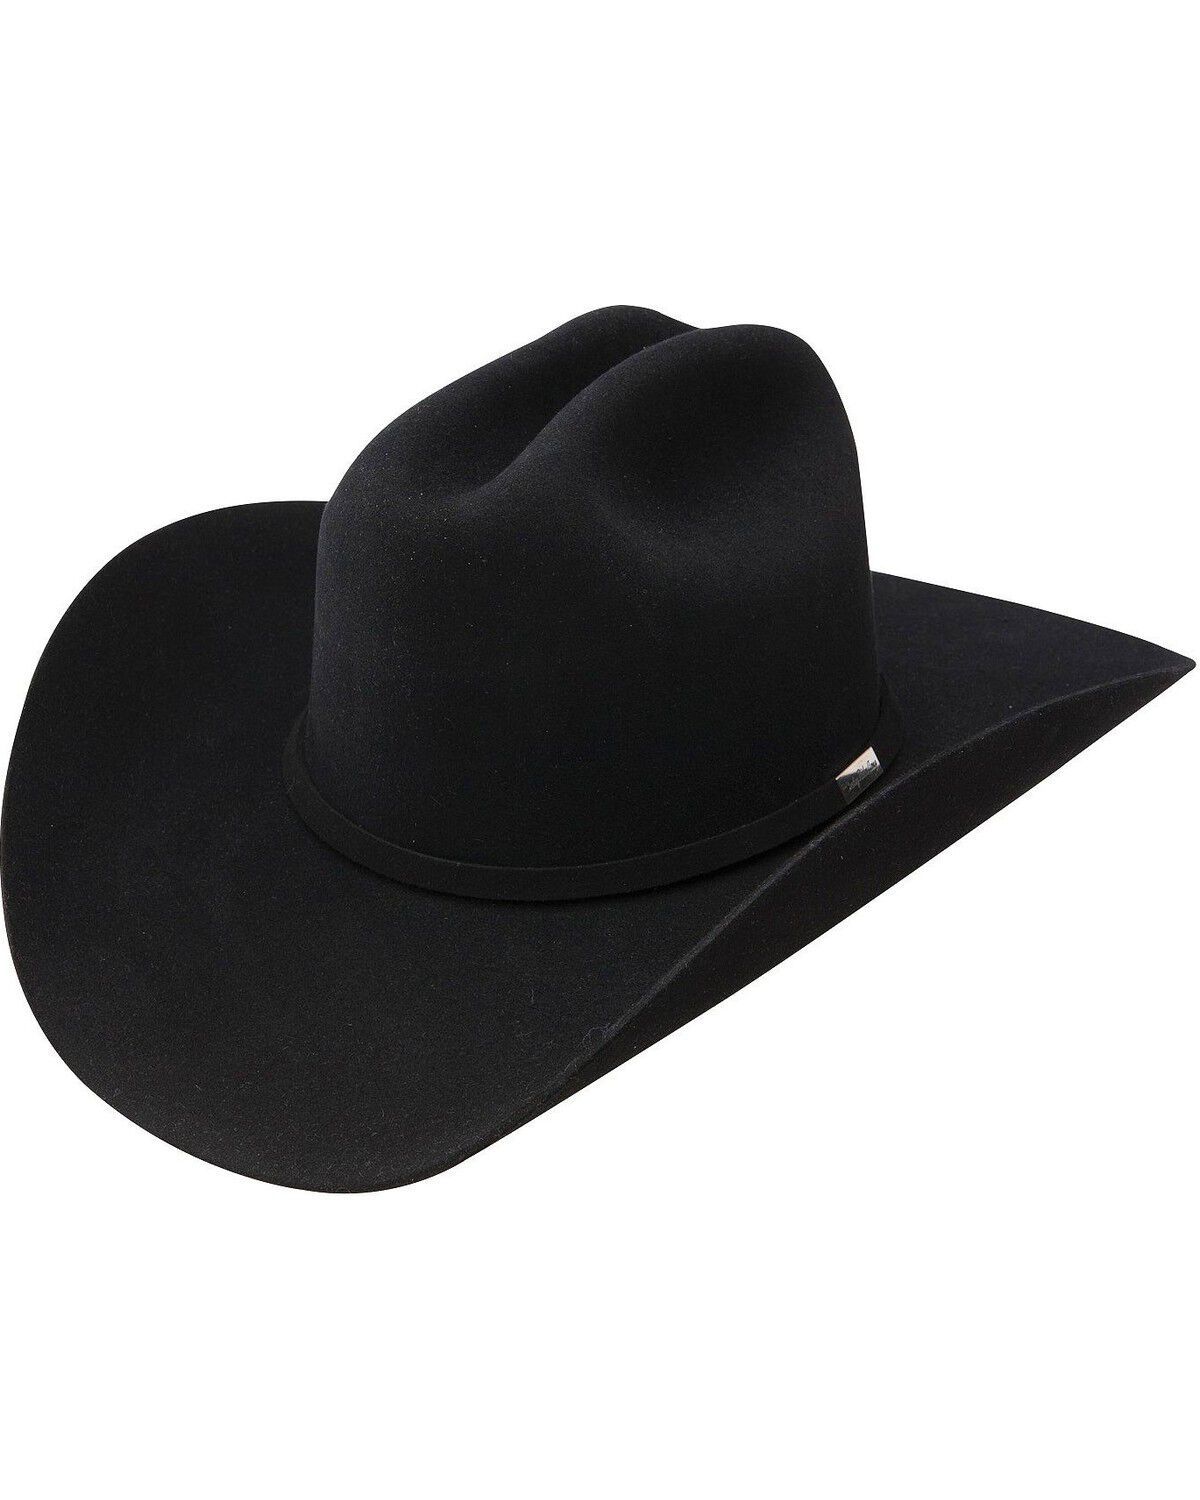 Men s Felt Wool Western Hats 75b3e981fb5